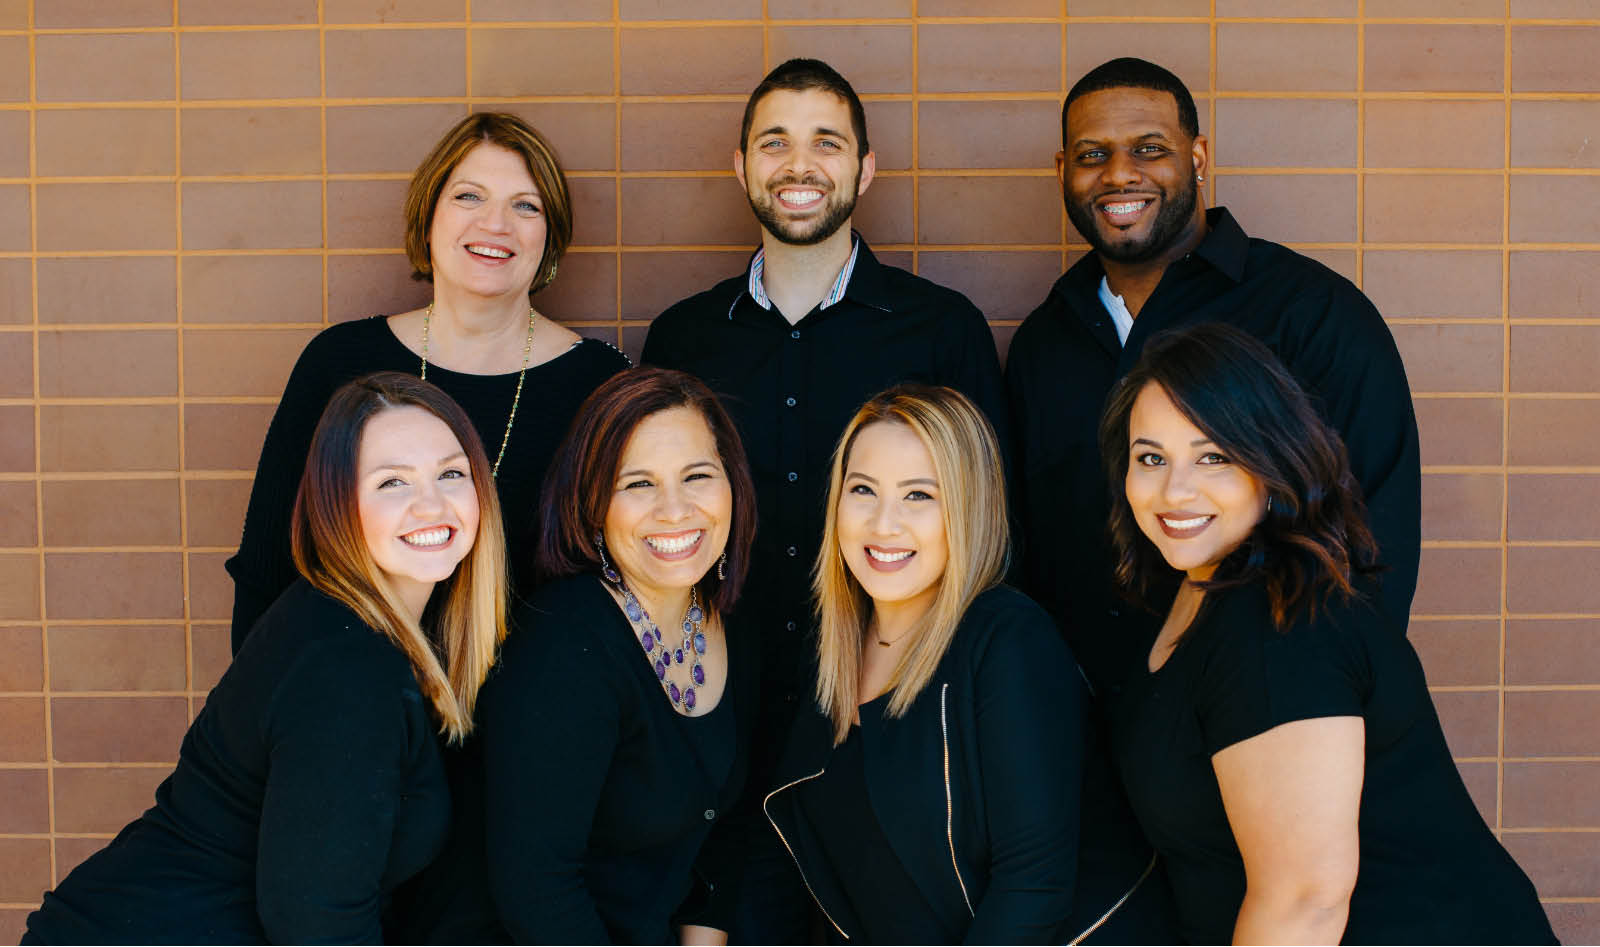 Dudley Smiles staff - Dudley Smiles team - Orthodontists in Kent, WA - Orthodontists in Issaquah, WA - Orthodontics